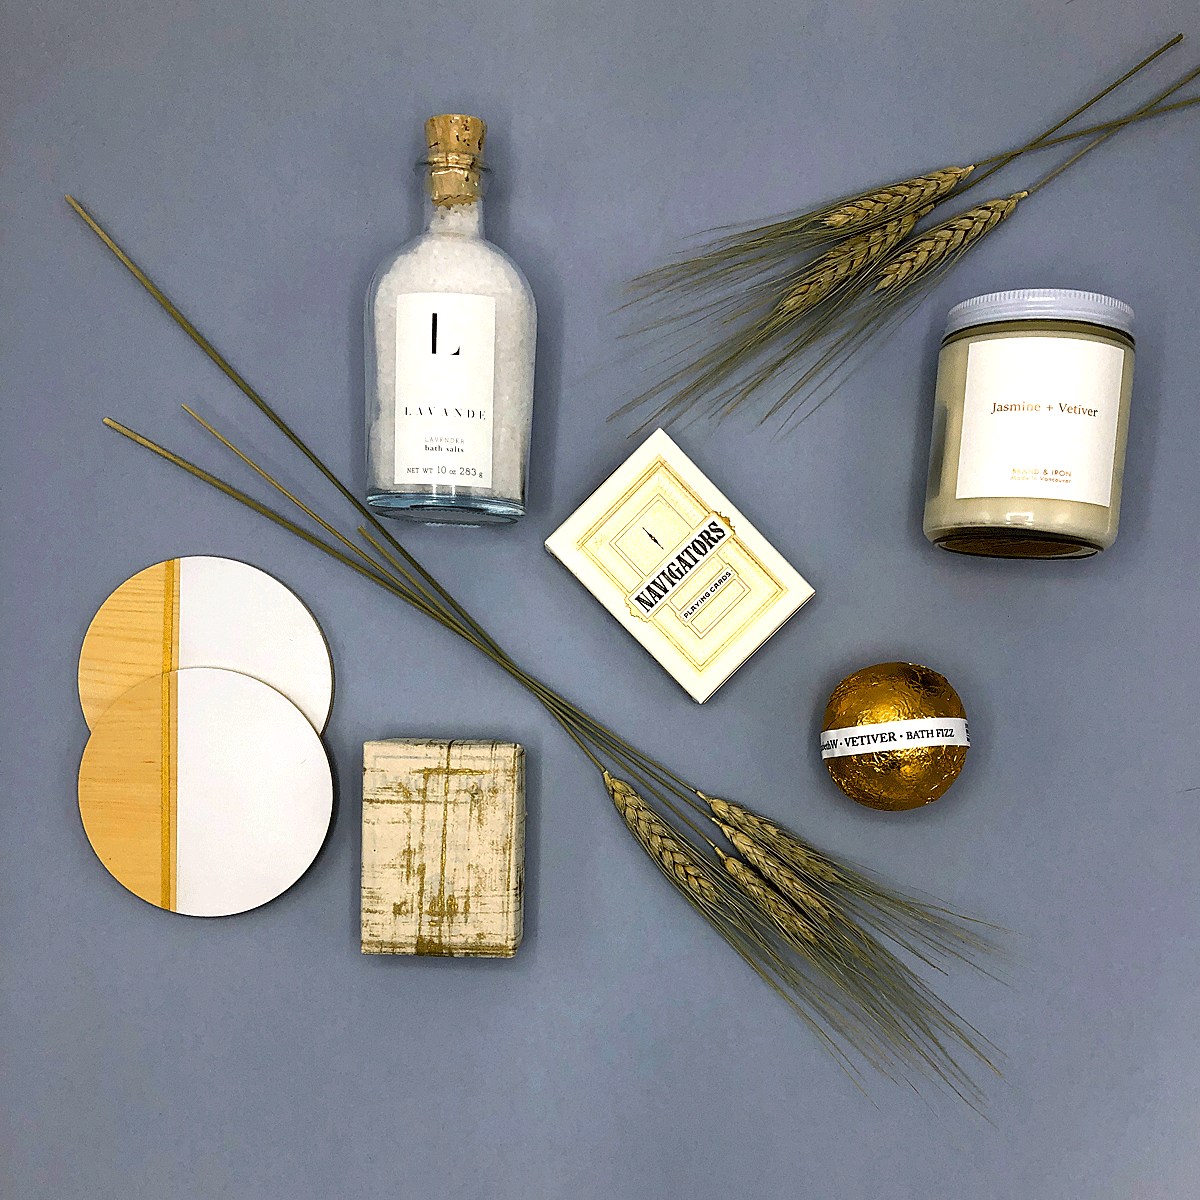 A limited edition mother's day gift with gorgeous bath products, premium playing cards, stunning coaster and a candle she will love.